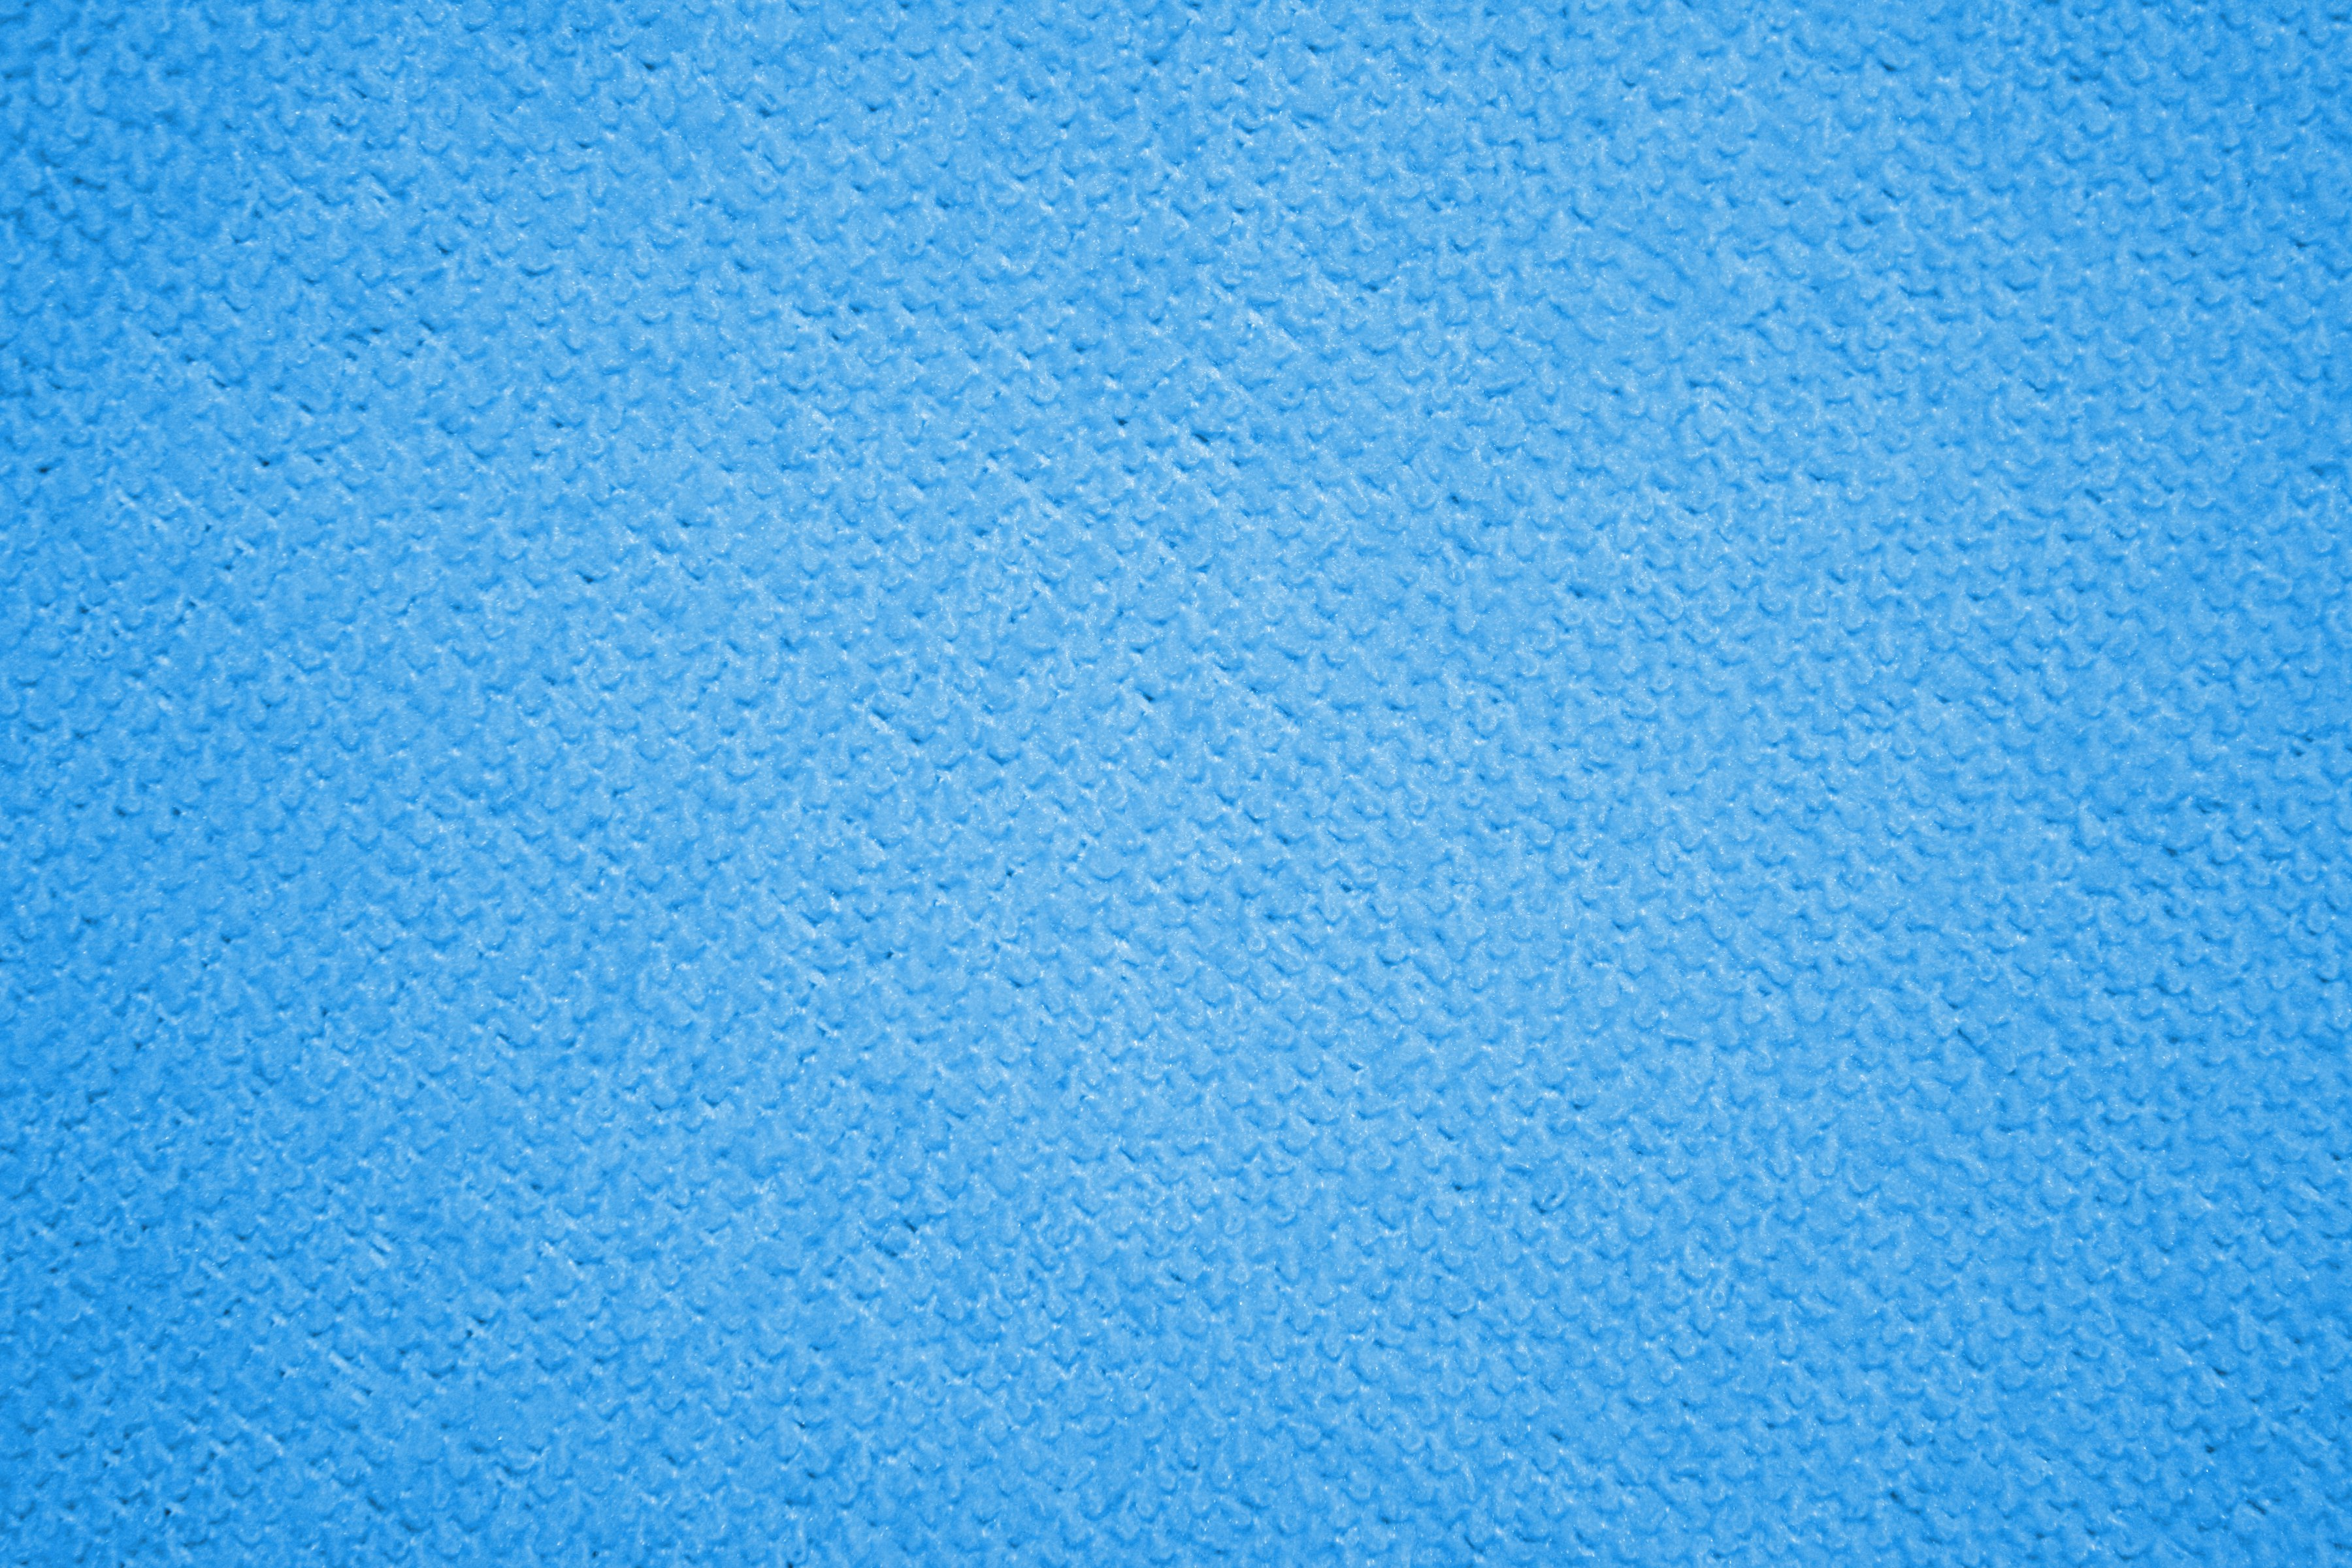 Azure Blue Microfiber Cloth Fabric Texture Picture | Free Photograph ... for Blue Curtain Fabric Texture  242xkb